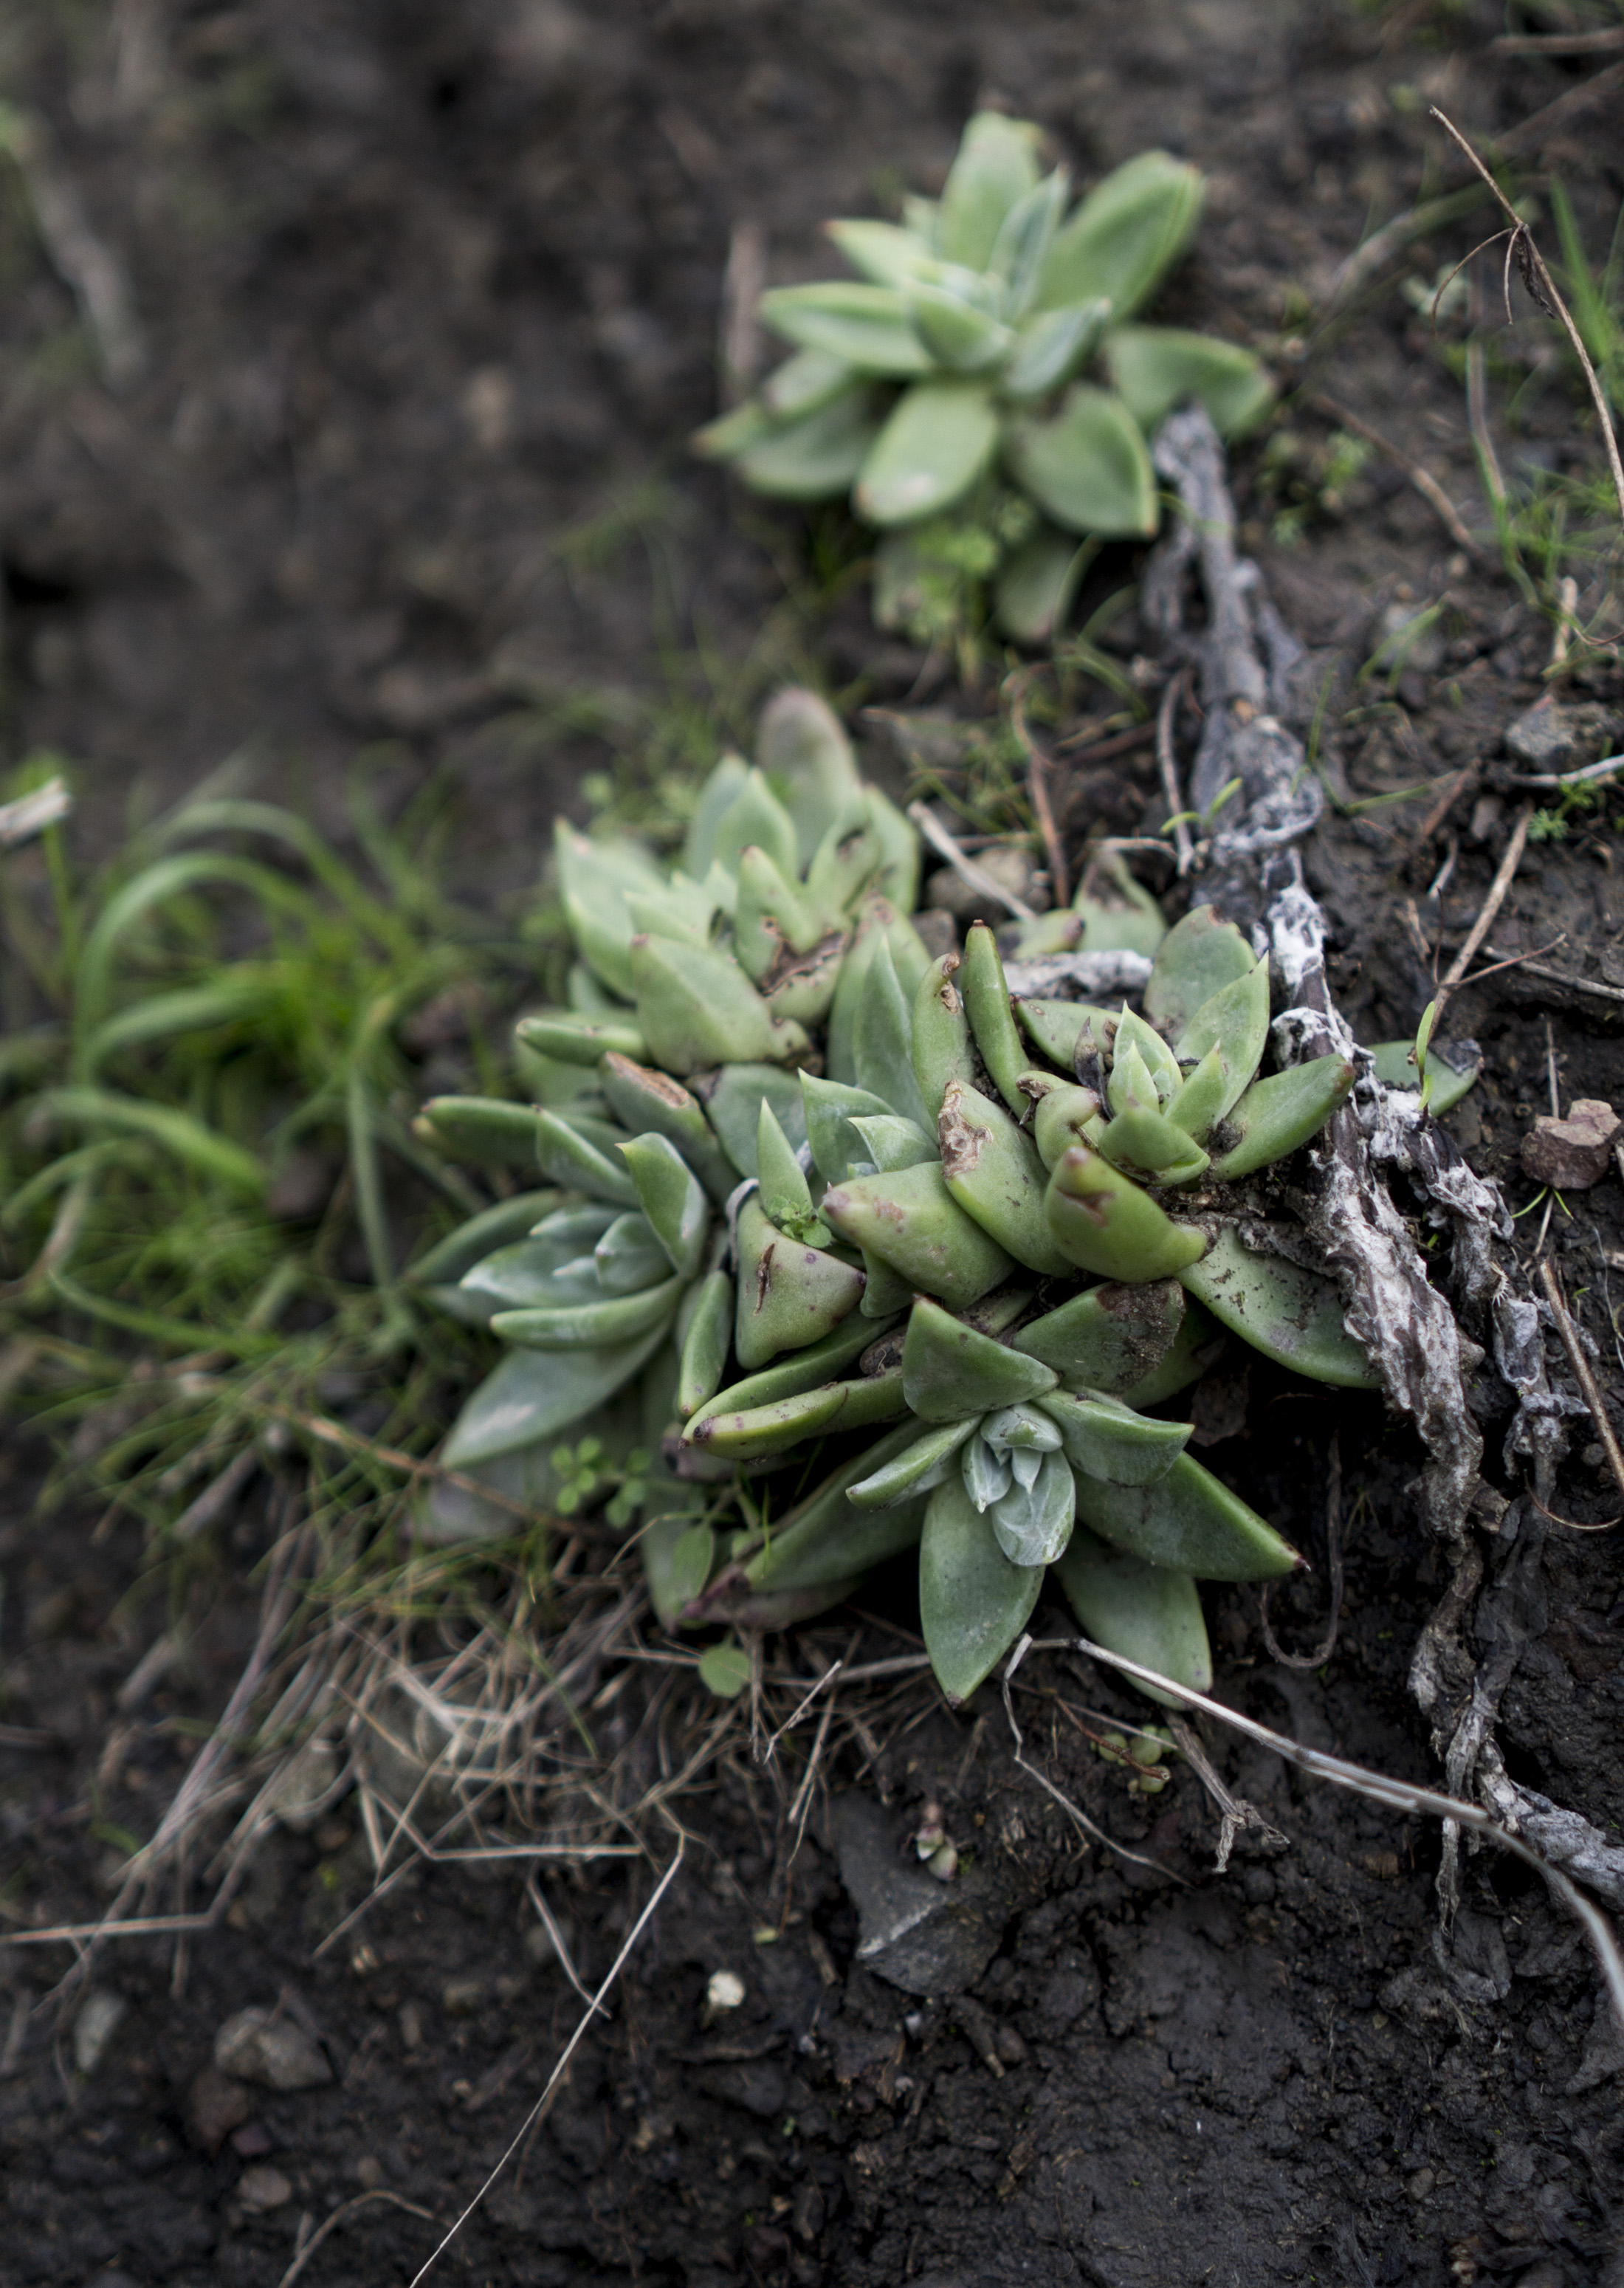 Dudleya succulents at Pirates Cove, Marin Headlands, Golden Gate National Recreation Area / Darker than Green